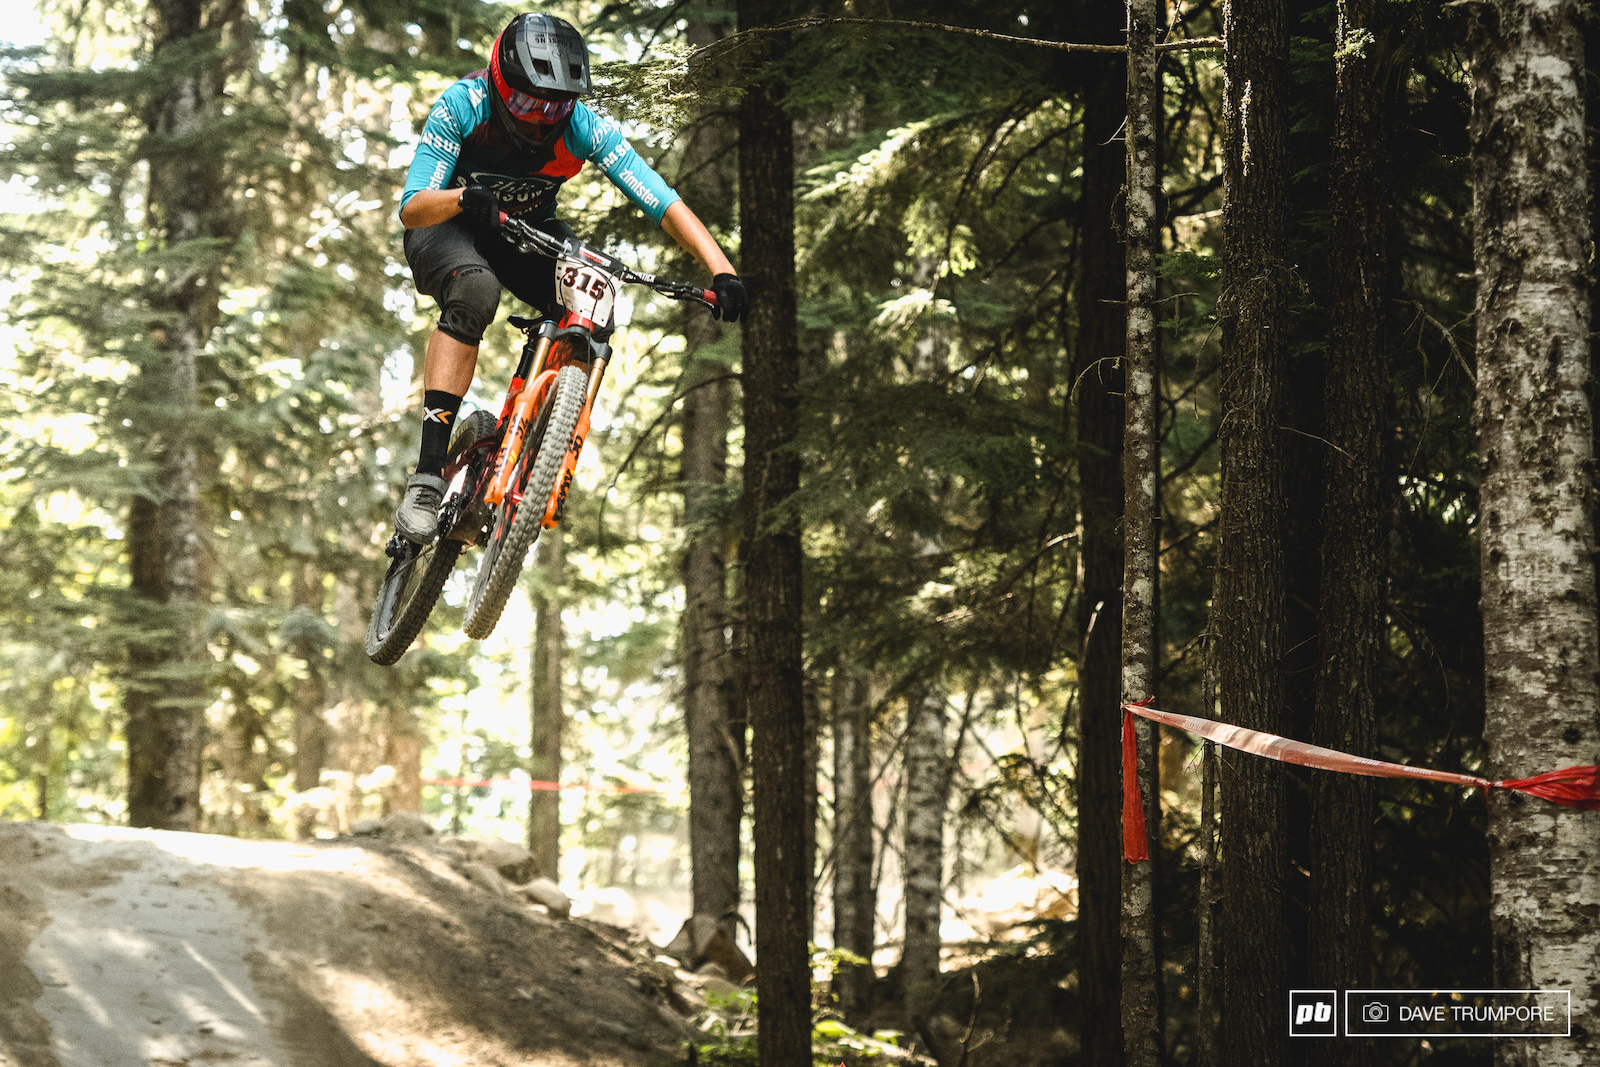 EWS specialist Caro Gehrig would take home 6th.